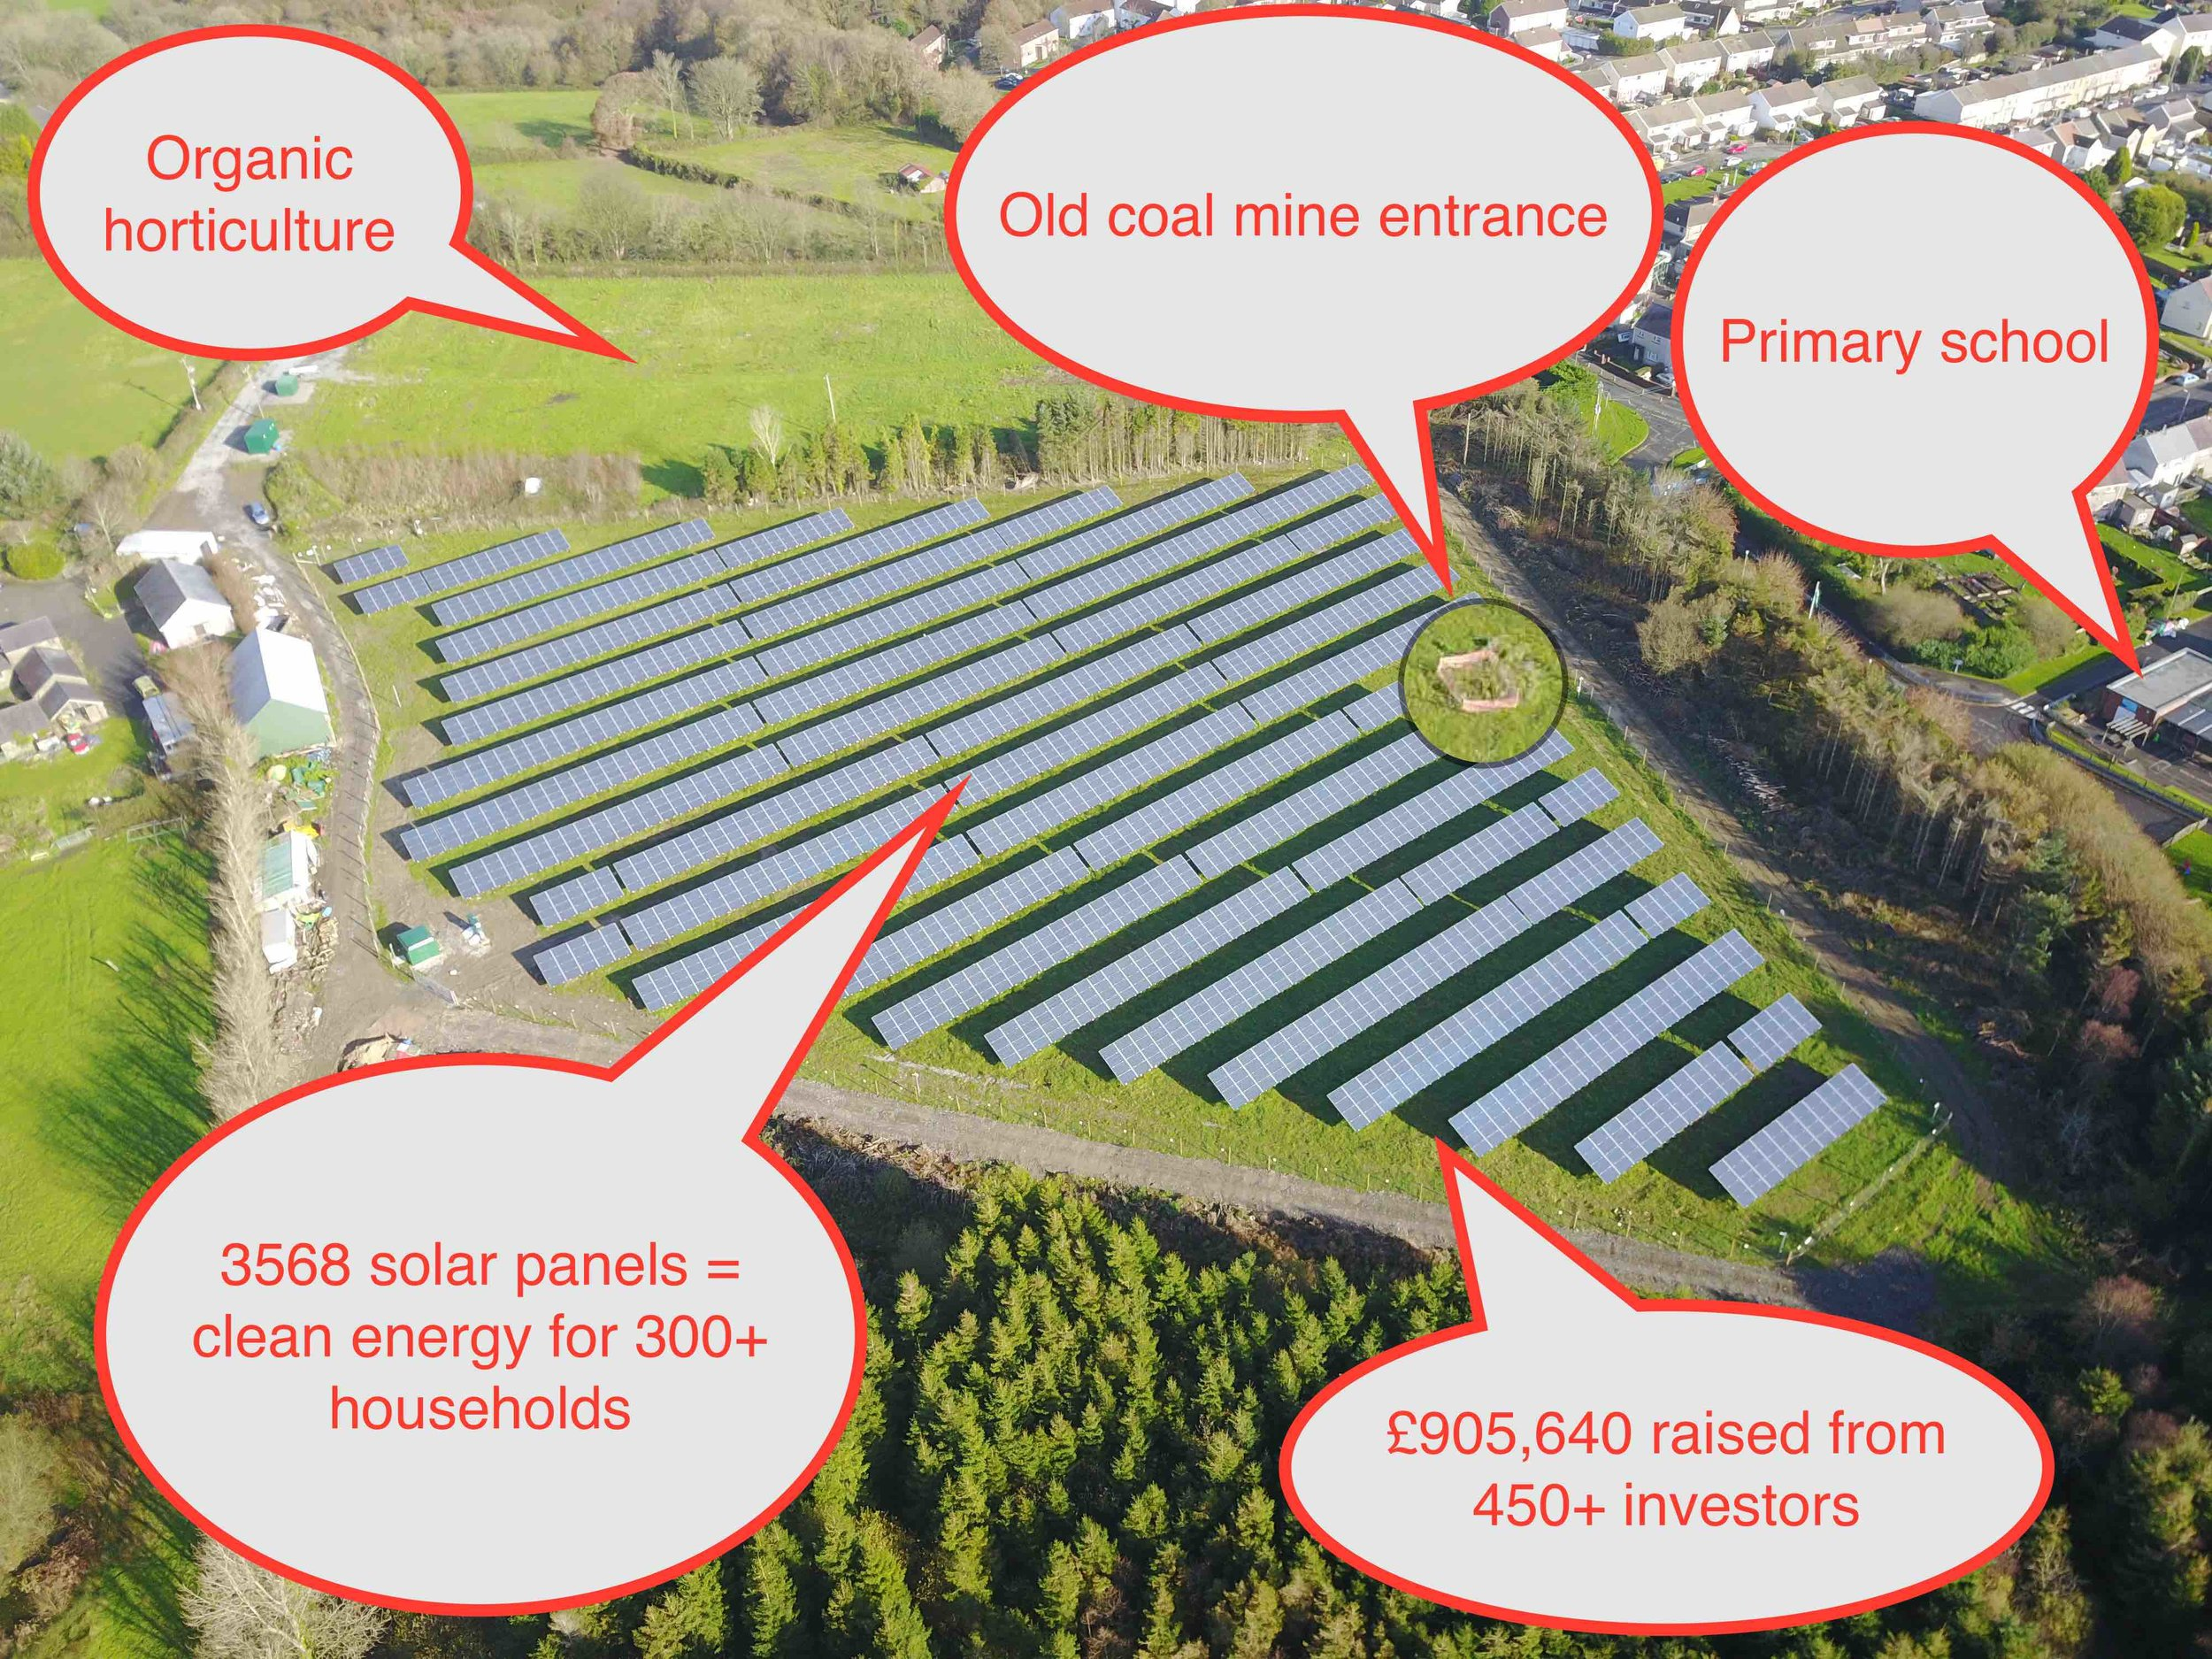 Gower Regeneration is Wales' first community owned solar farm. They won the 2017 Community Energy Project award. Visit their website  here .